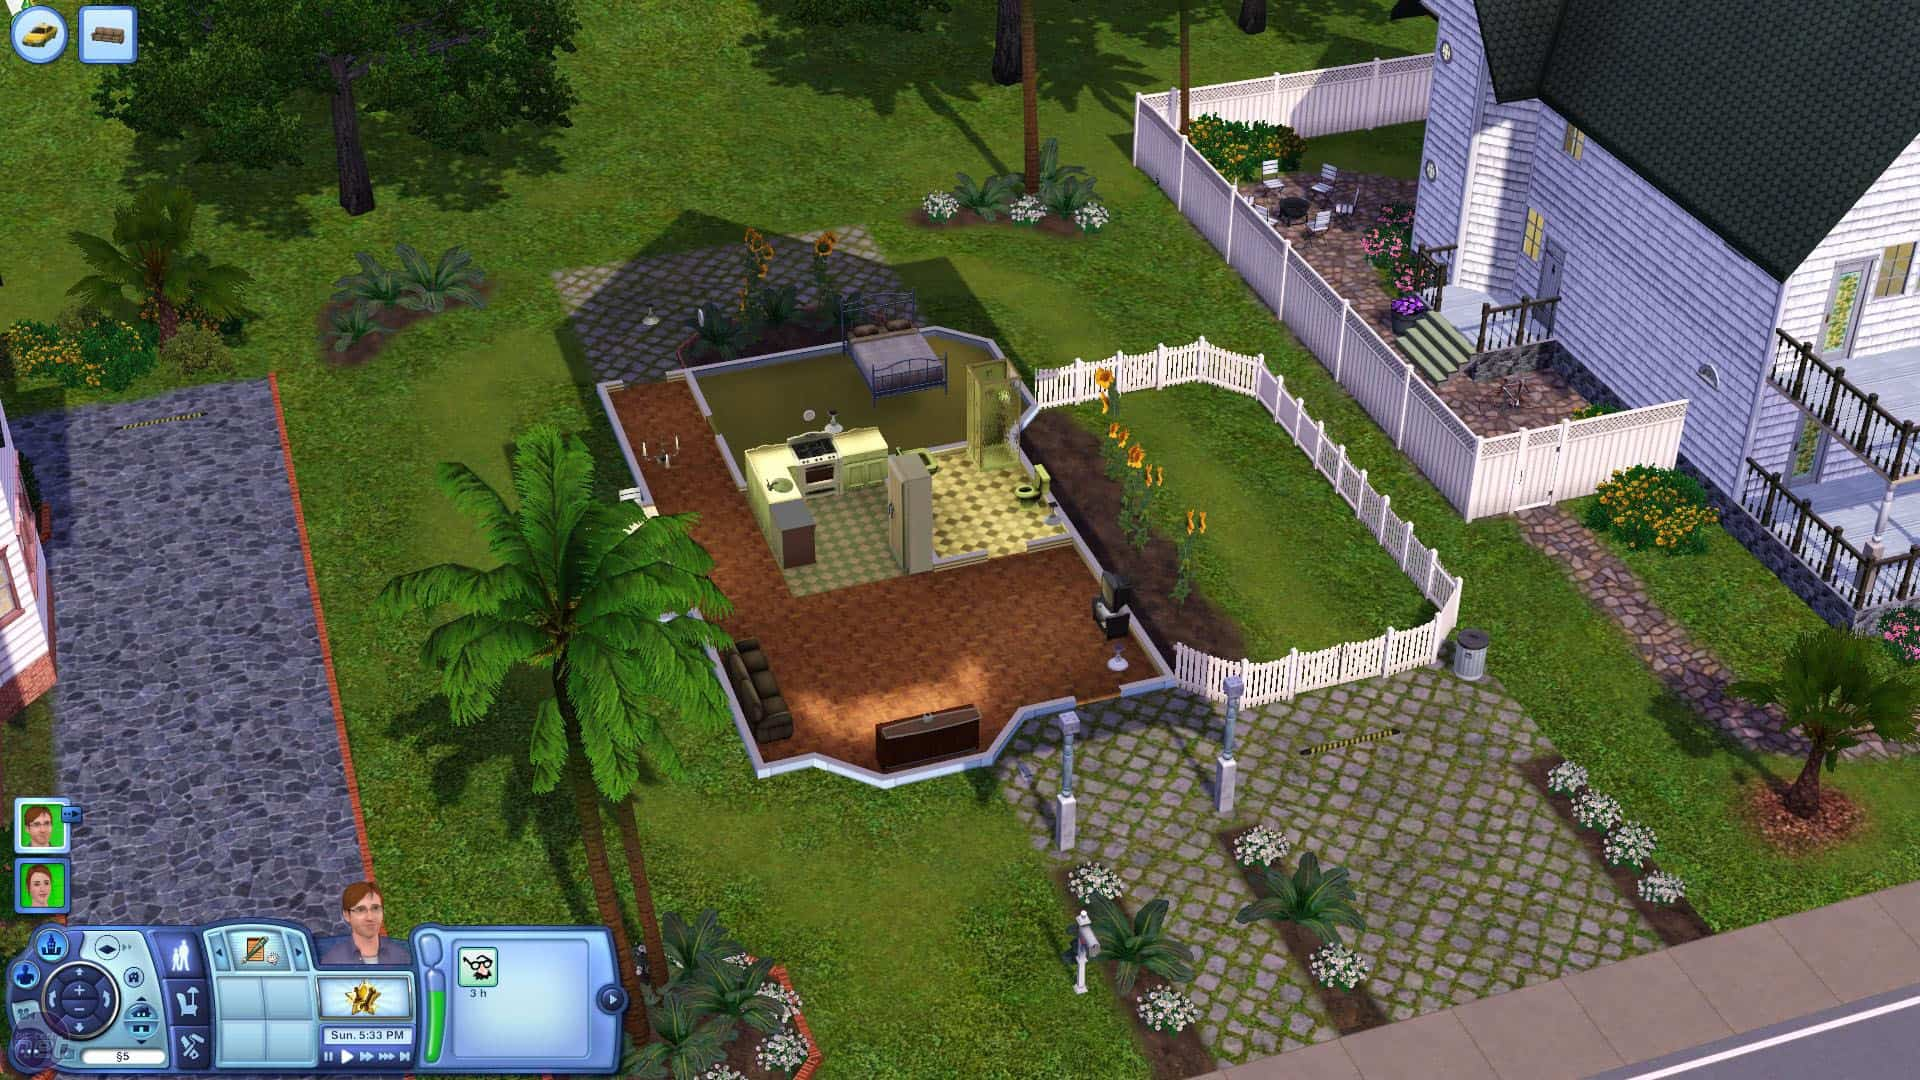 The Sims 3 gioco di pc